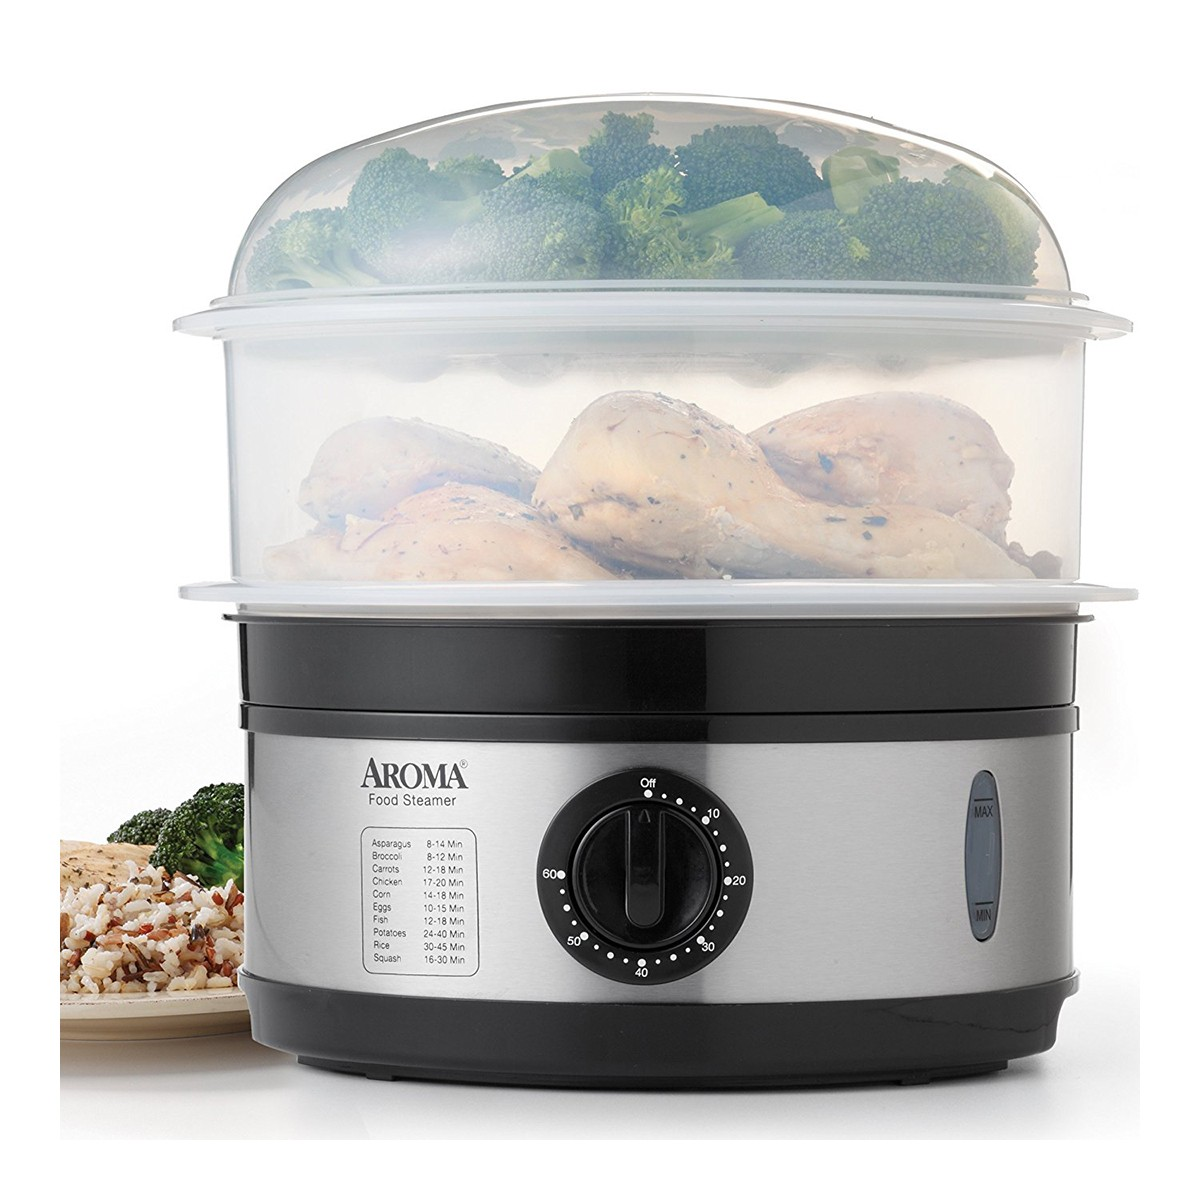 Yamibuy.com:Customer reviews:AROMA 5-Qt Stainless Steel Food Steamer AFS-186 (2 Year Manufacturer Warranty)